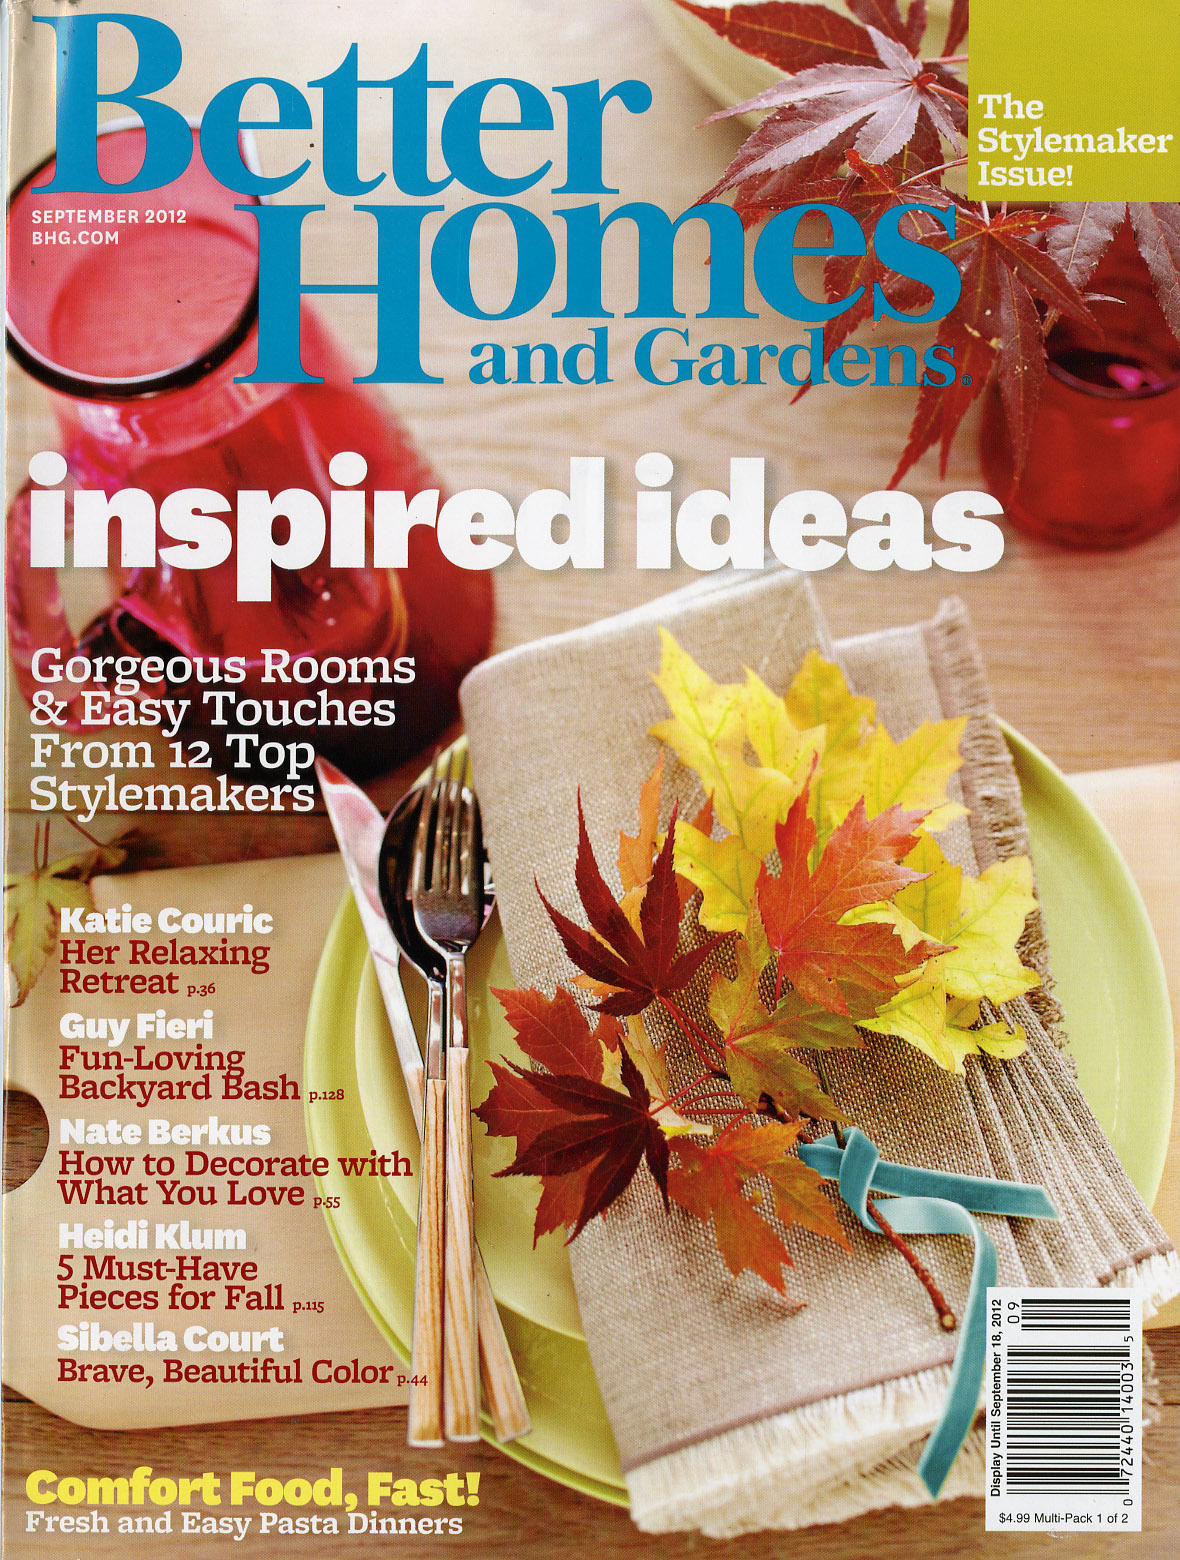 A sign of the times from better to good to a new Better homes and gardens current issue